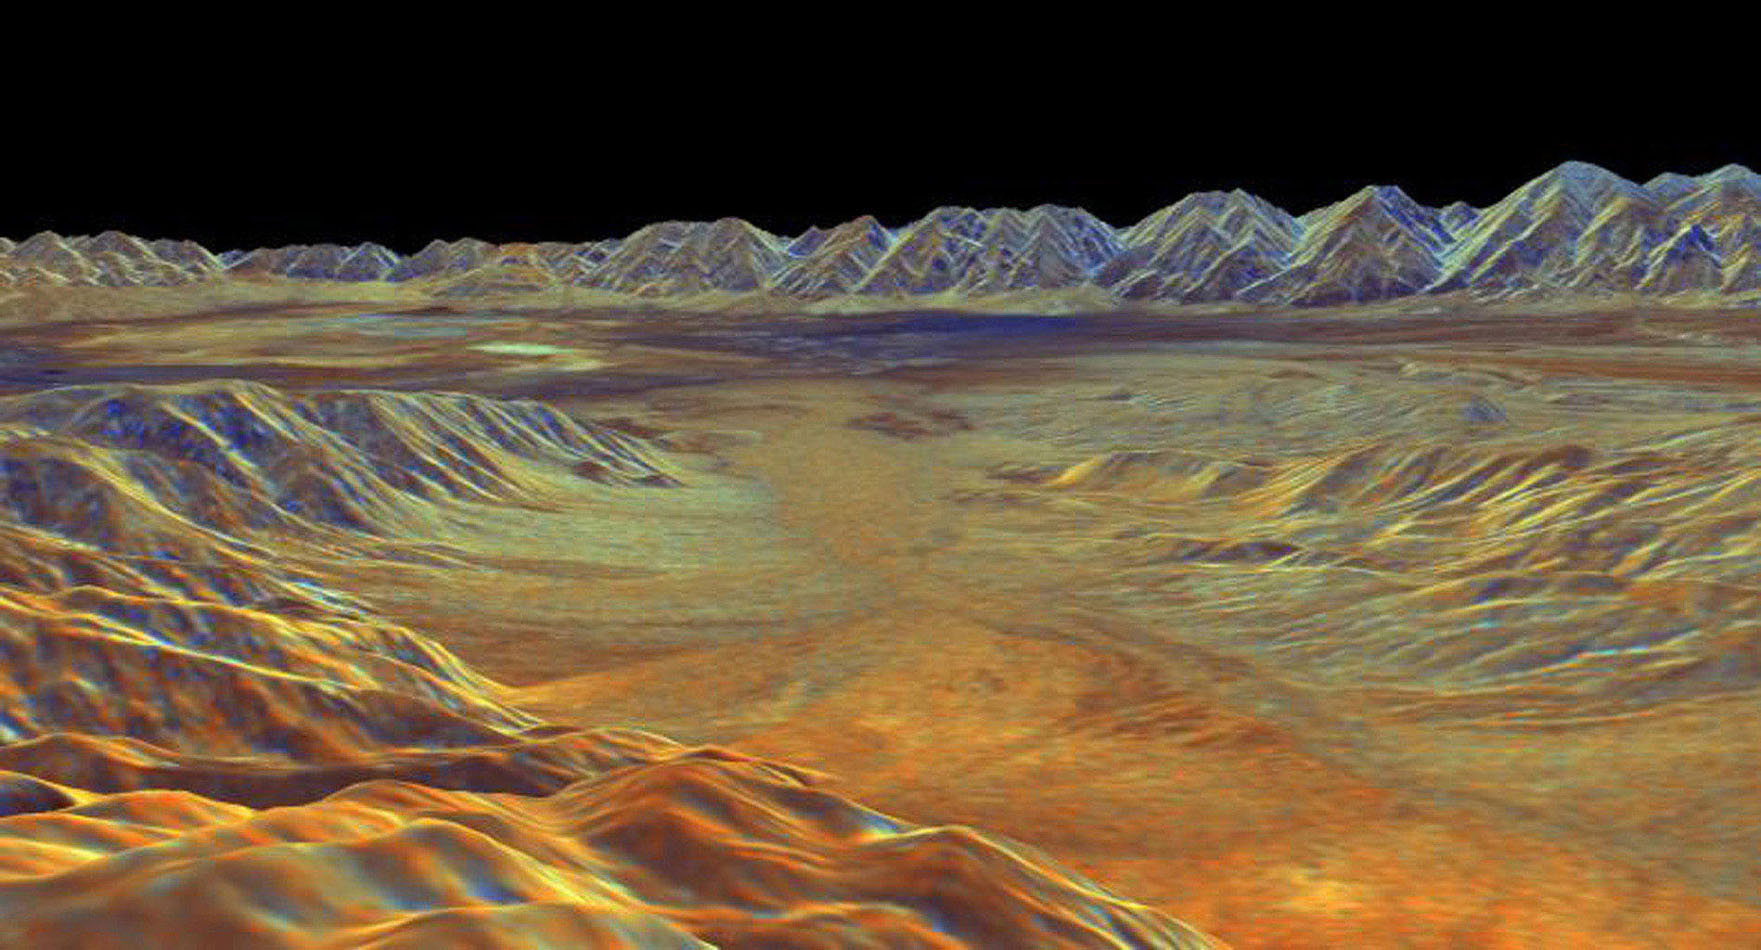 This is a three-dimensional perspective view from NASA's Spaceborne Imaging Radar C/X-Band Synthetic Aperture Radar of Saline Valley, about 30 km (19 miles) east of the town of Independence, California.